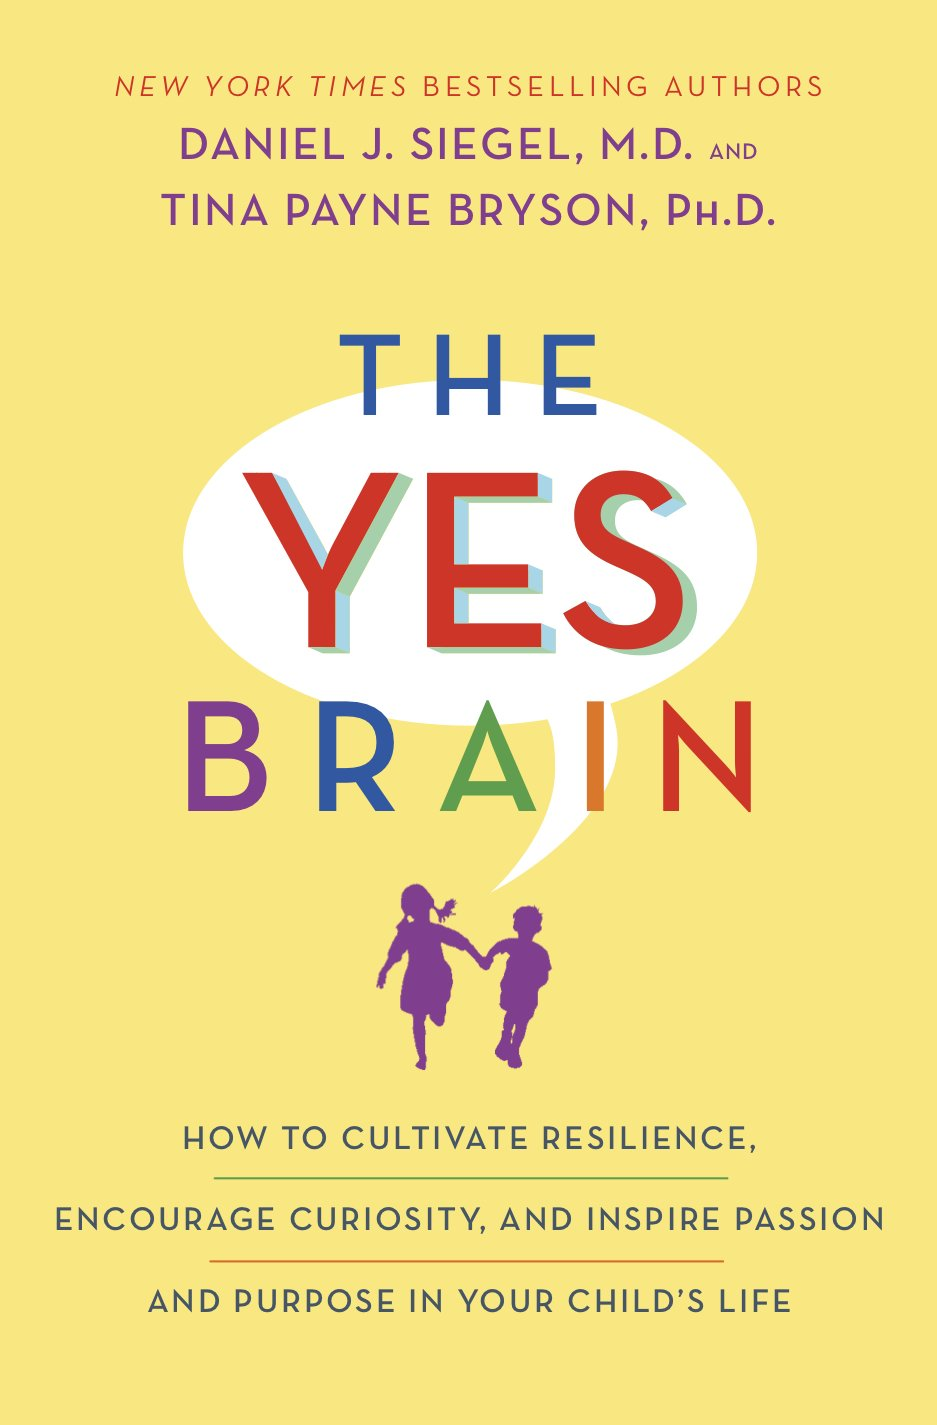 The Yes Brain book cover